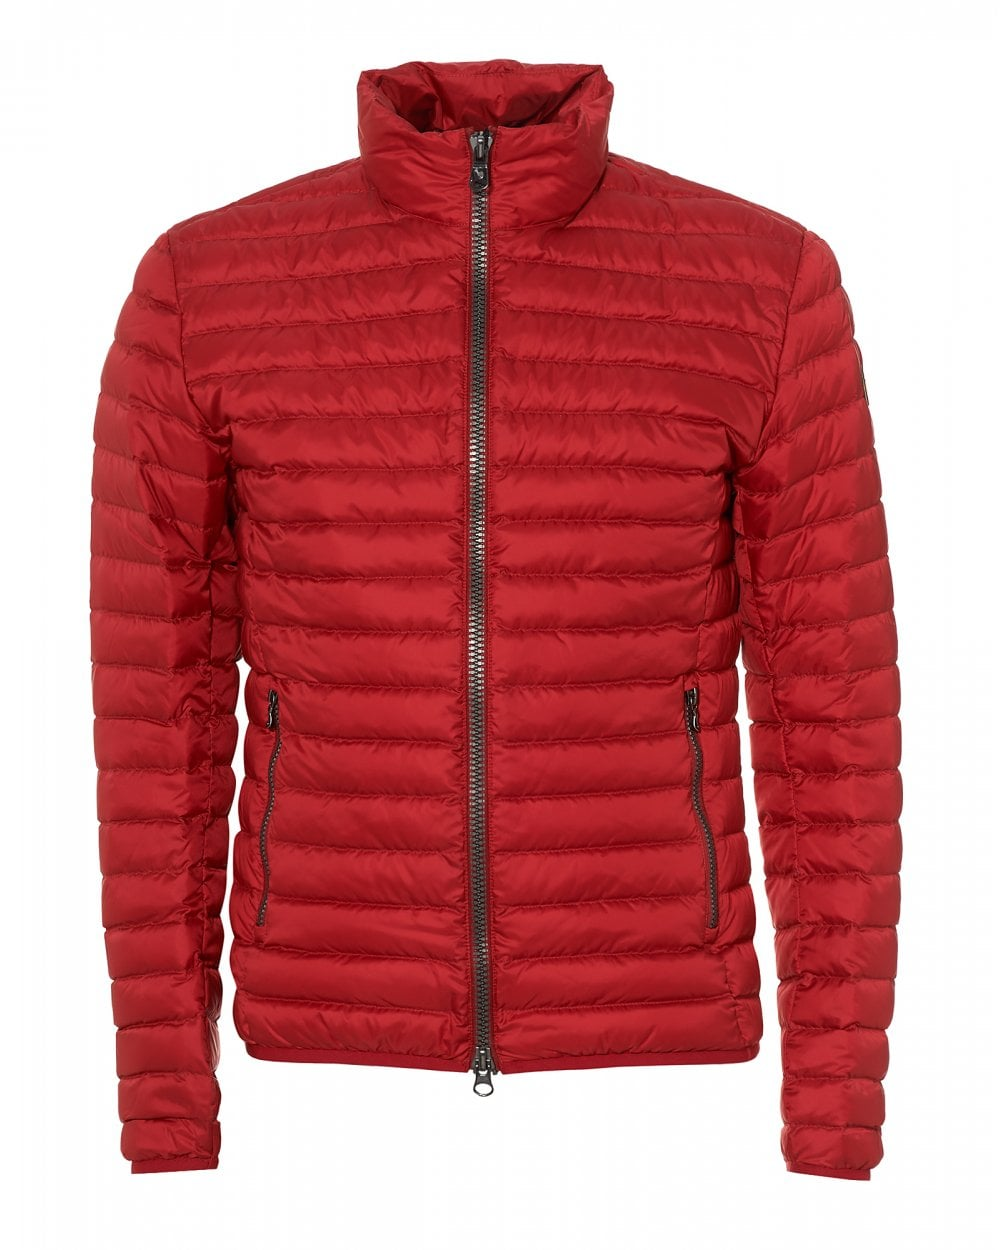 colmar-mens-down-insulated-racing-red-jacket-p32404-140679_image